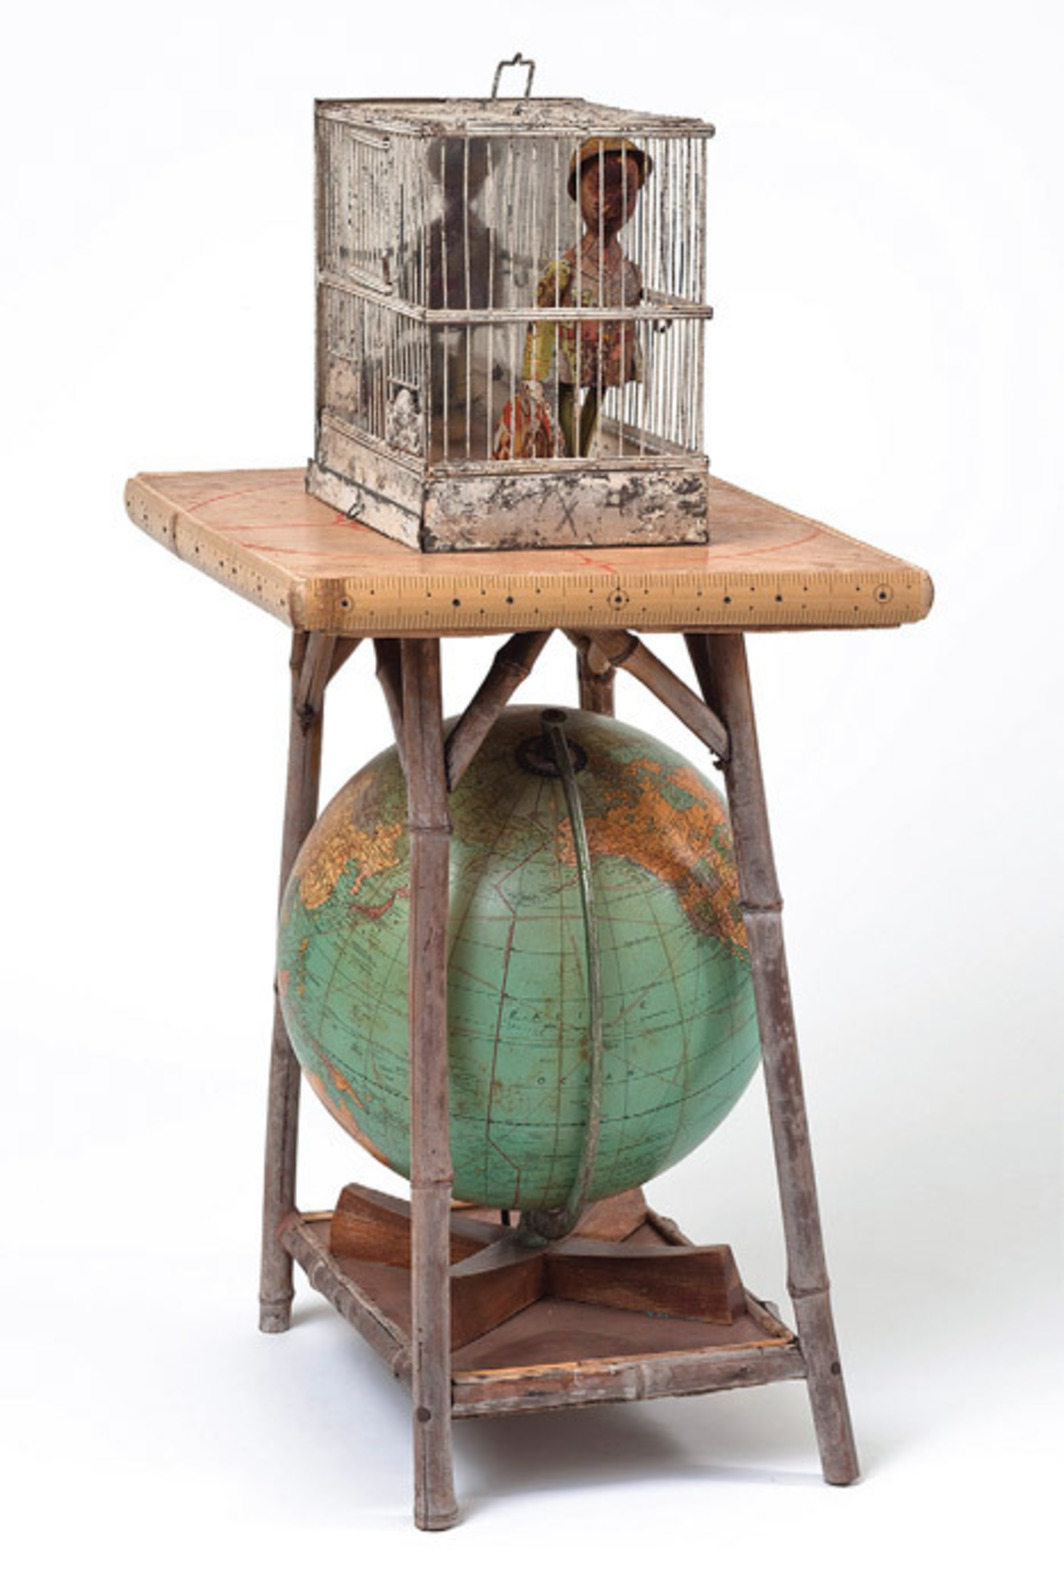 "Betye Saar, Globe Trotter, 2007, mixed media, 32 1/2 x 18 1/4 x 14 1/8""."